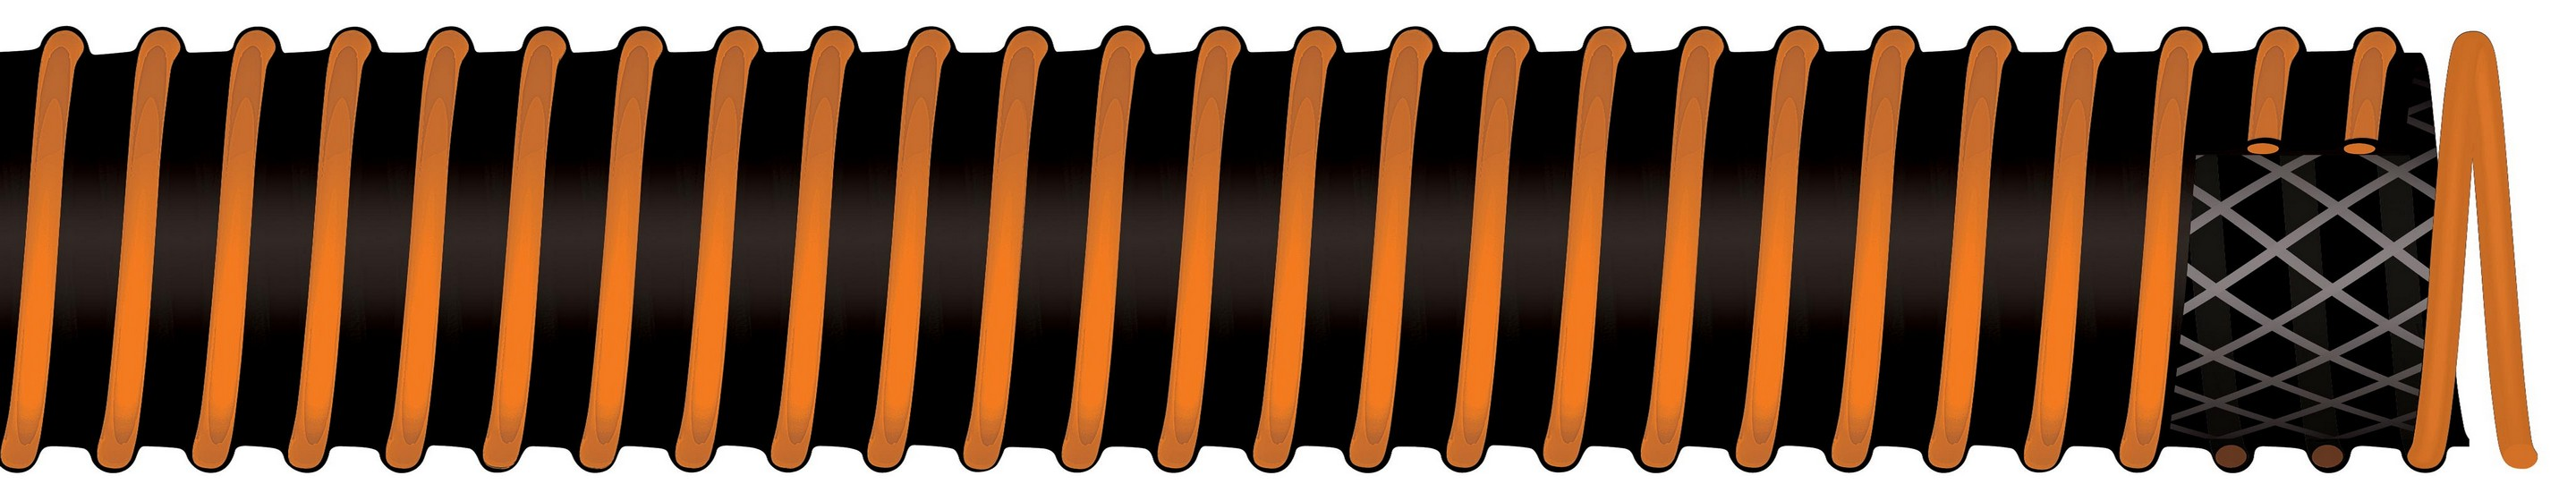 PicturesCategory/EOLO_Black_Orange 140x100.jpg